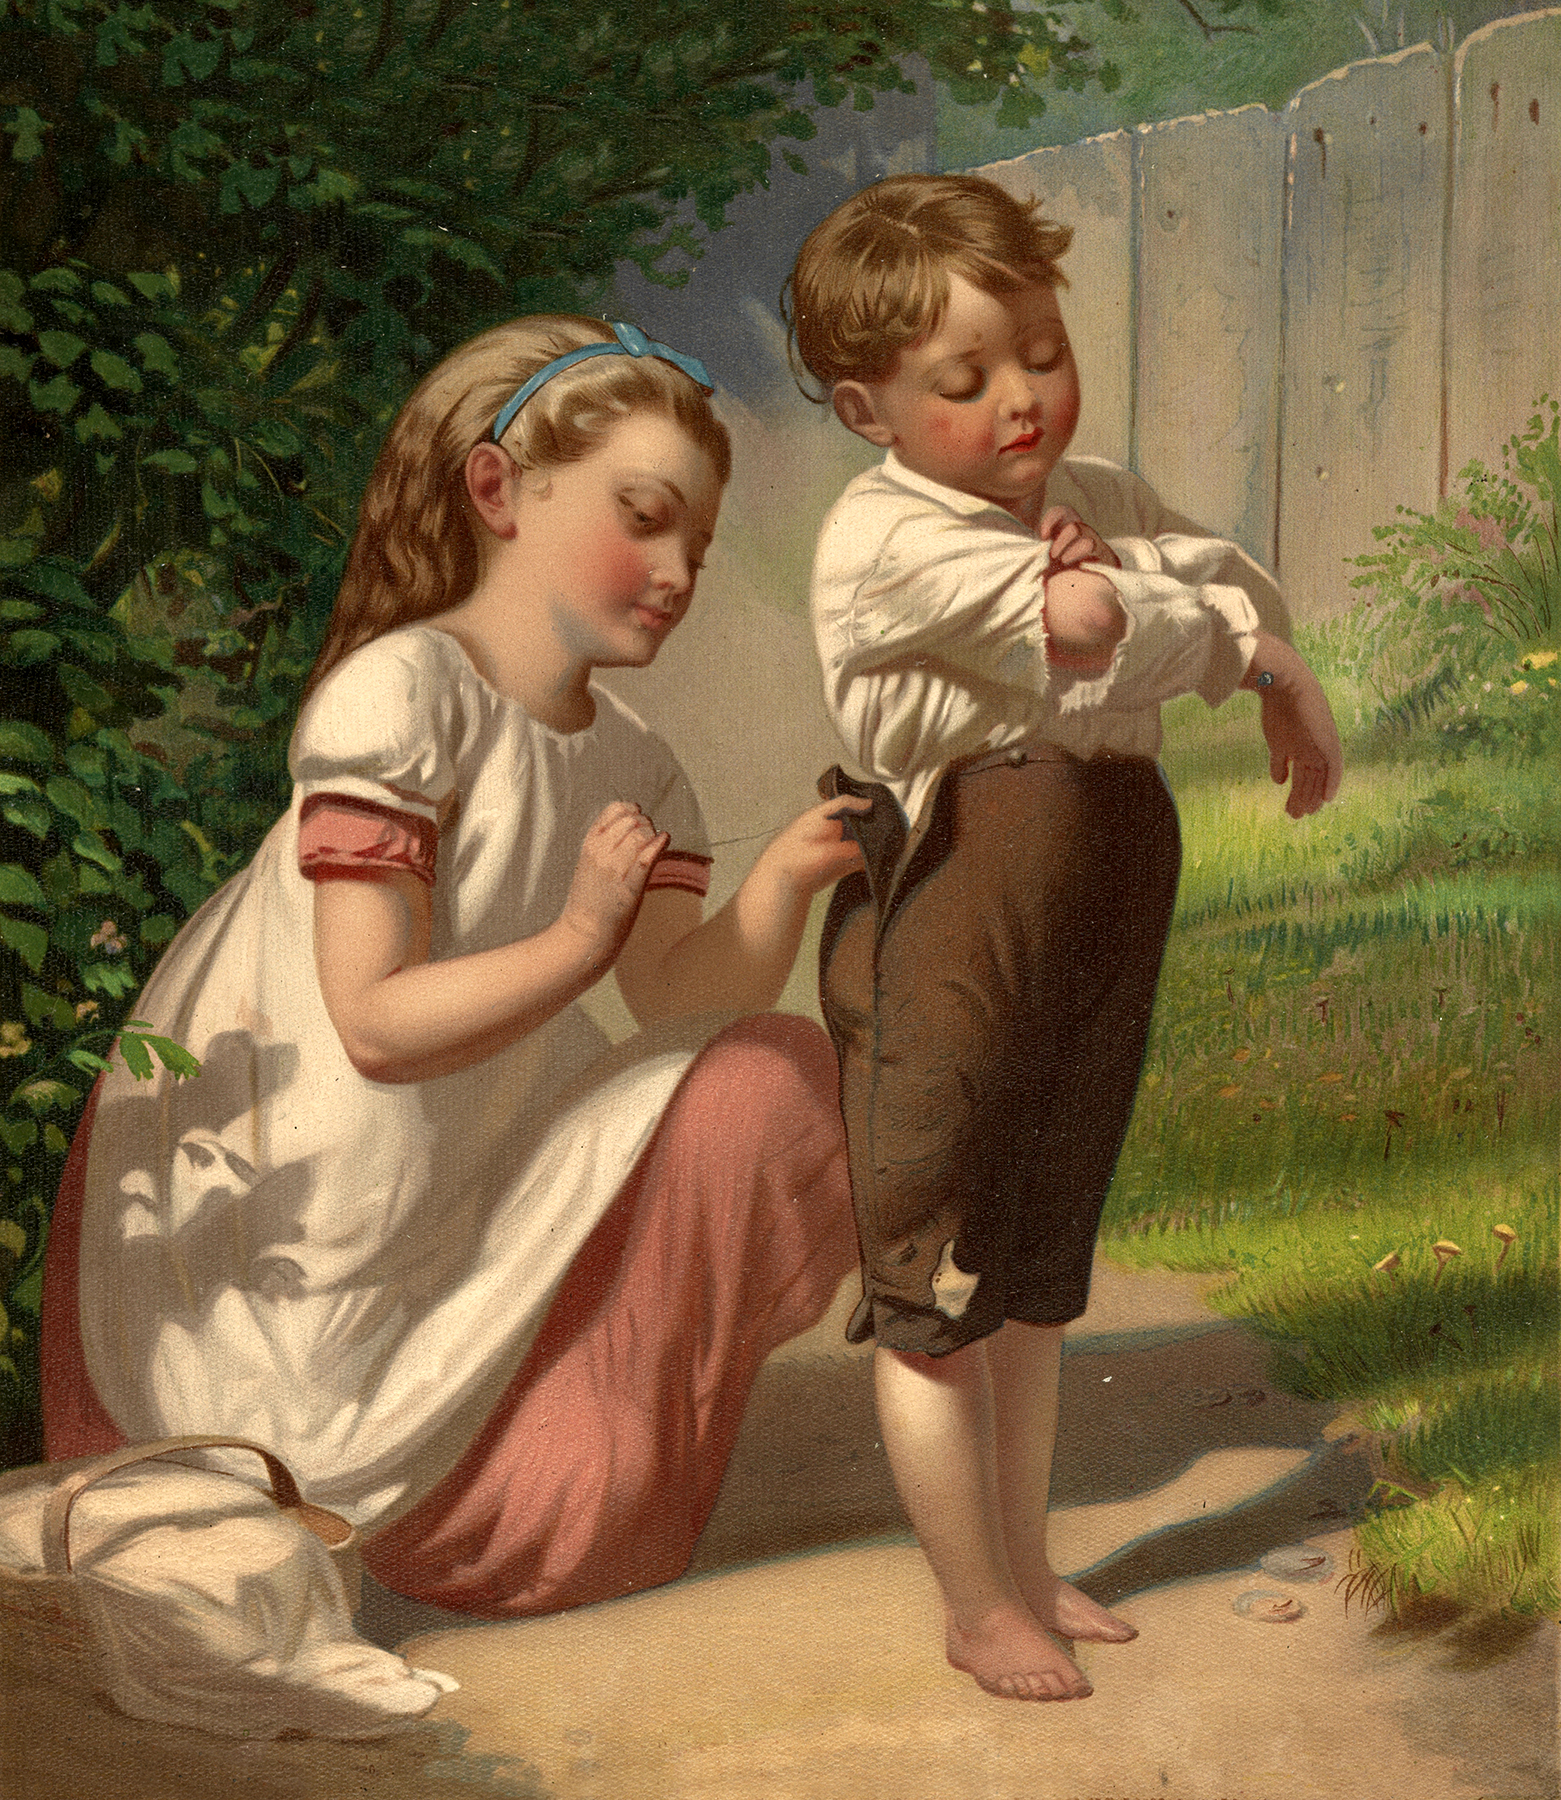 Vintage Boy And Girl Sewing Image